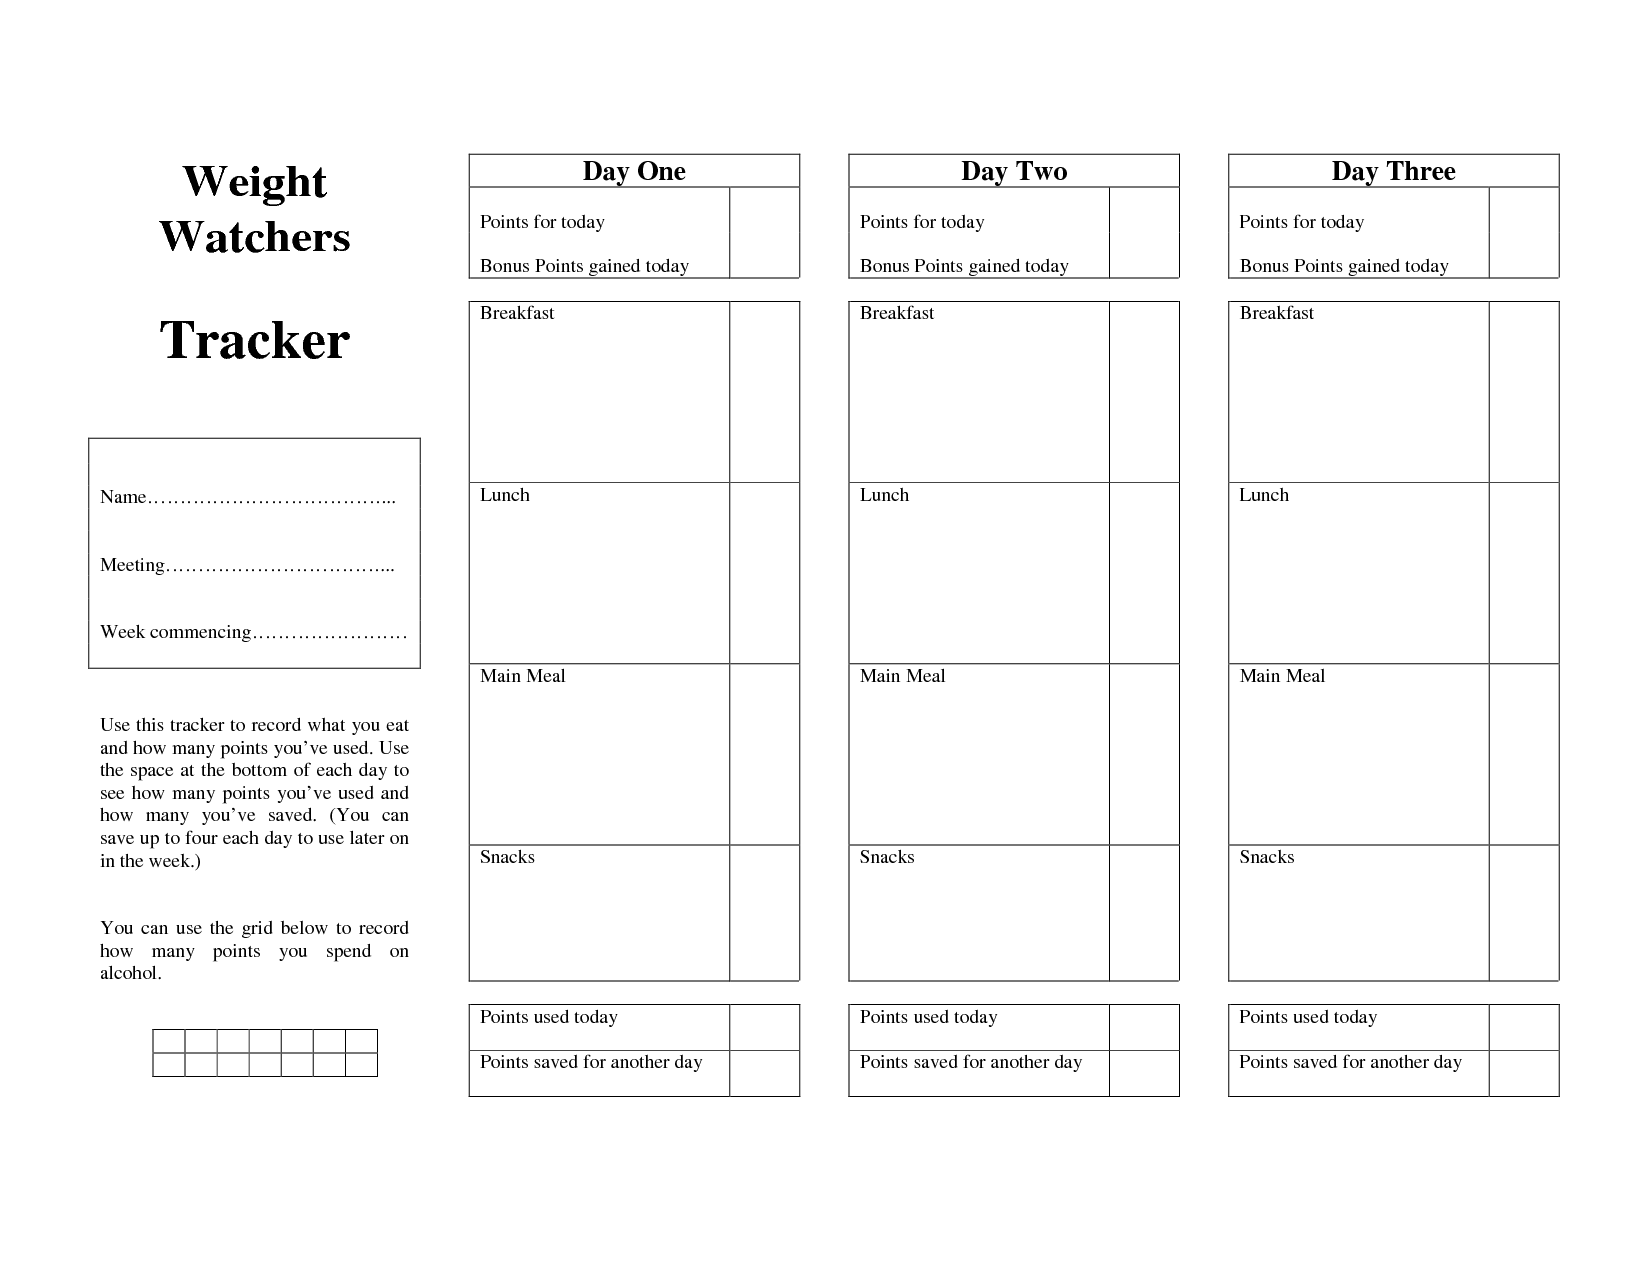 weight watchers points guide tracker form weight watchers pinterest. Black Bedroom Furniture Sets. Home Design Ideas